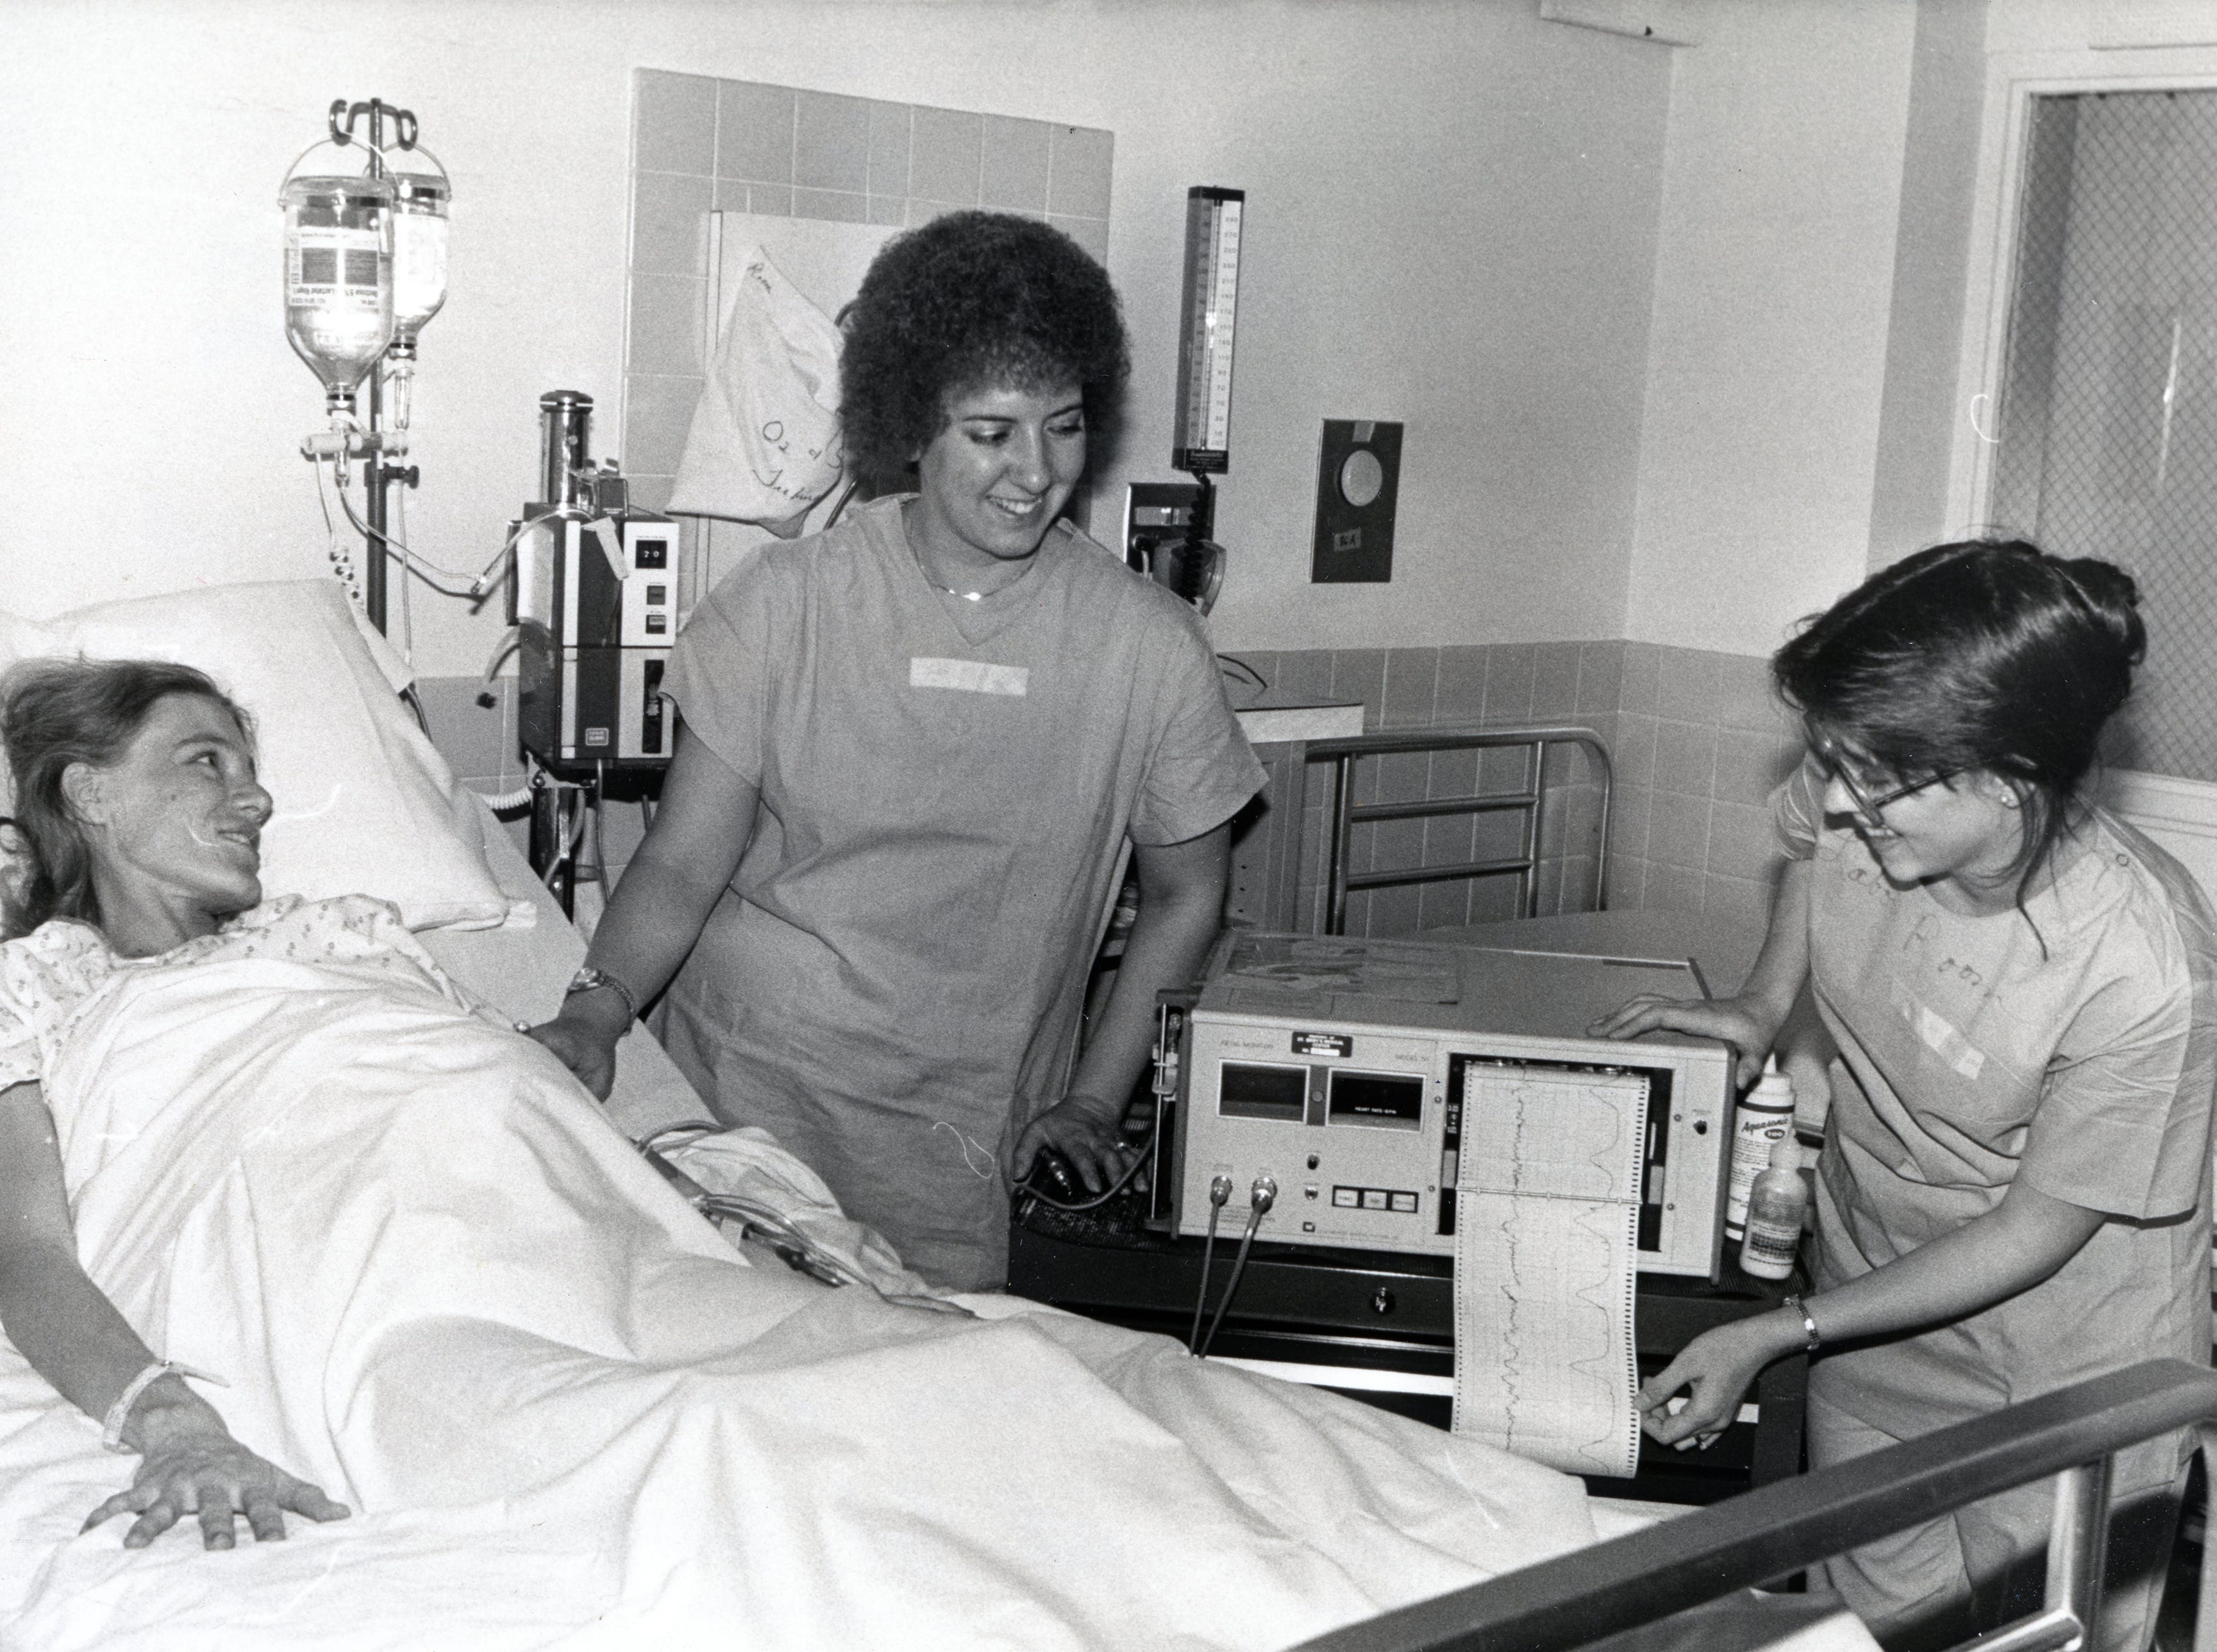 Nursing students Susan Col and Karen Lawson tend to patient Lydia Kiggins at St. Mary's Medical Center in January 1979.